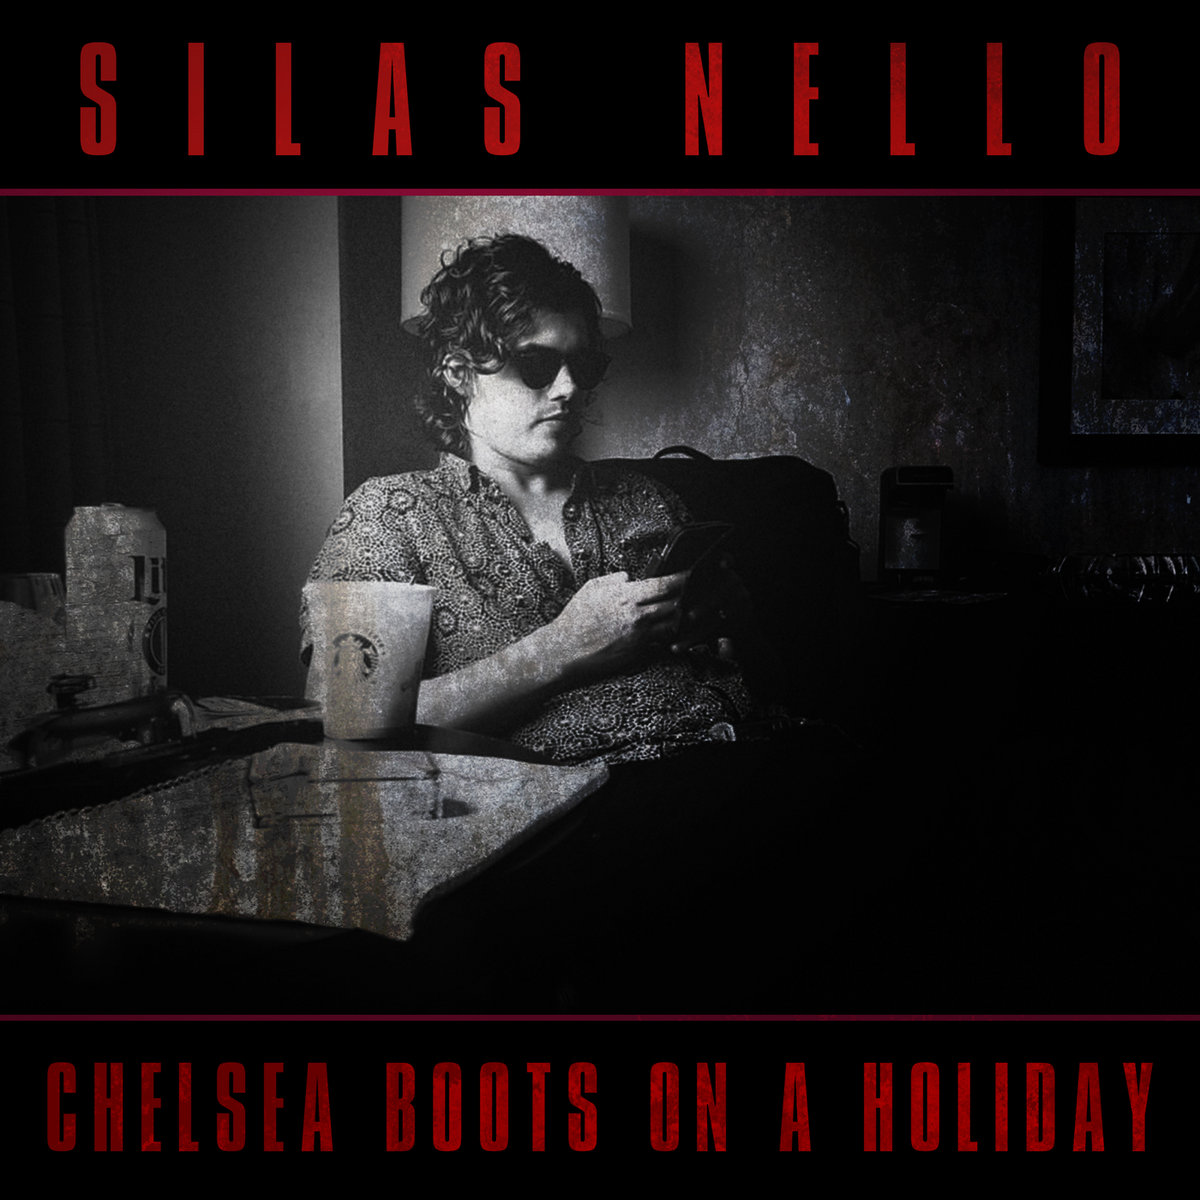 Chelsea Boots on a Holiday by Silas Nello